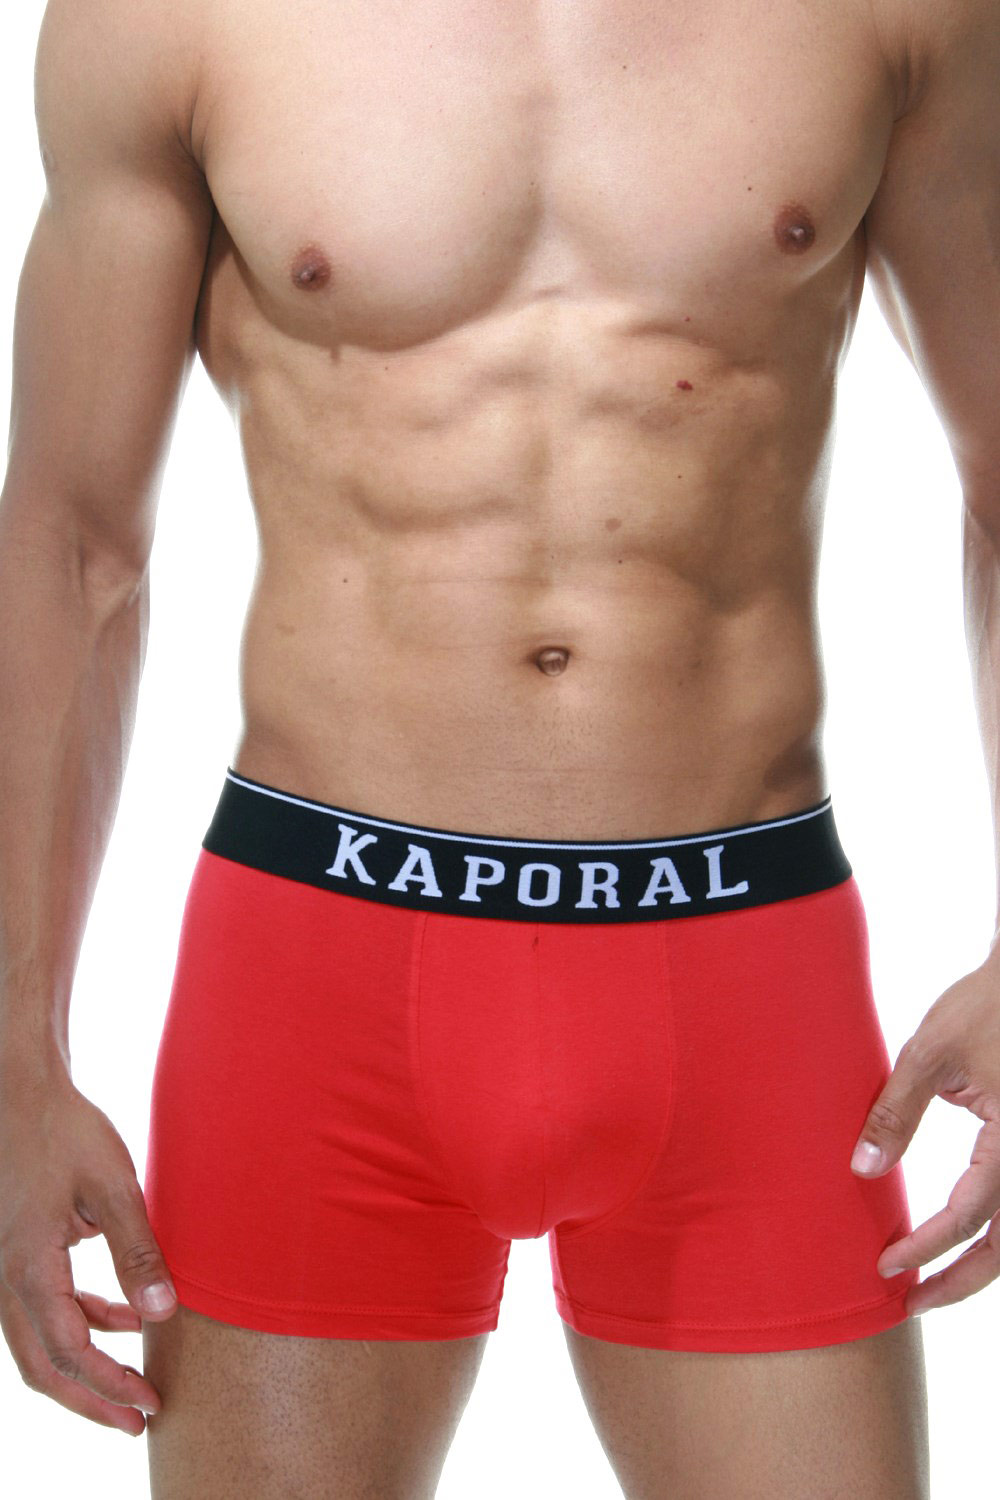 KAPORAL trunks 3 pieces at oboy.com